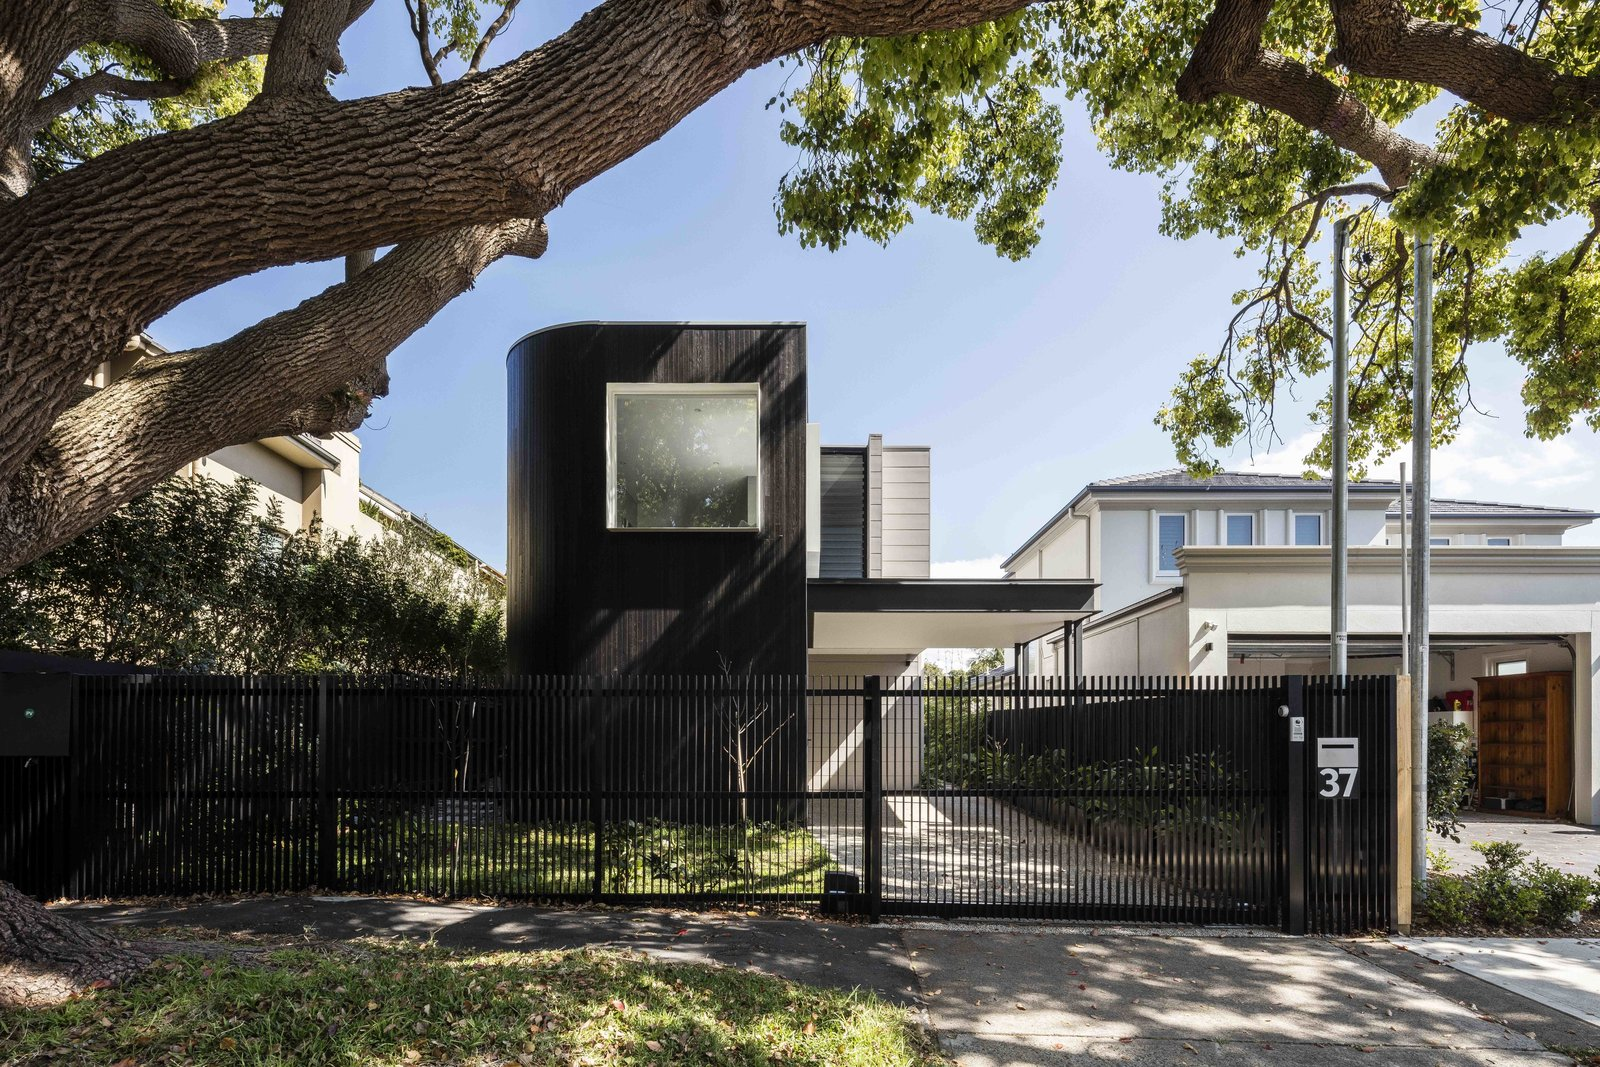 Tagged: Outdoor, Front Yard, Trees, Grass, Vertical Fences, Wall, and Metal Fences, Wall.  The Rose Bay House by Prebuilt